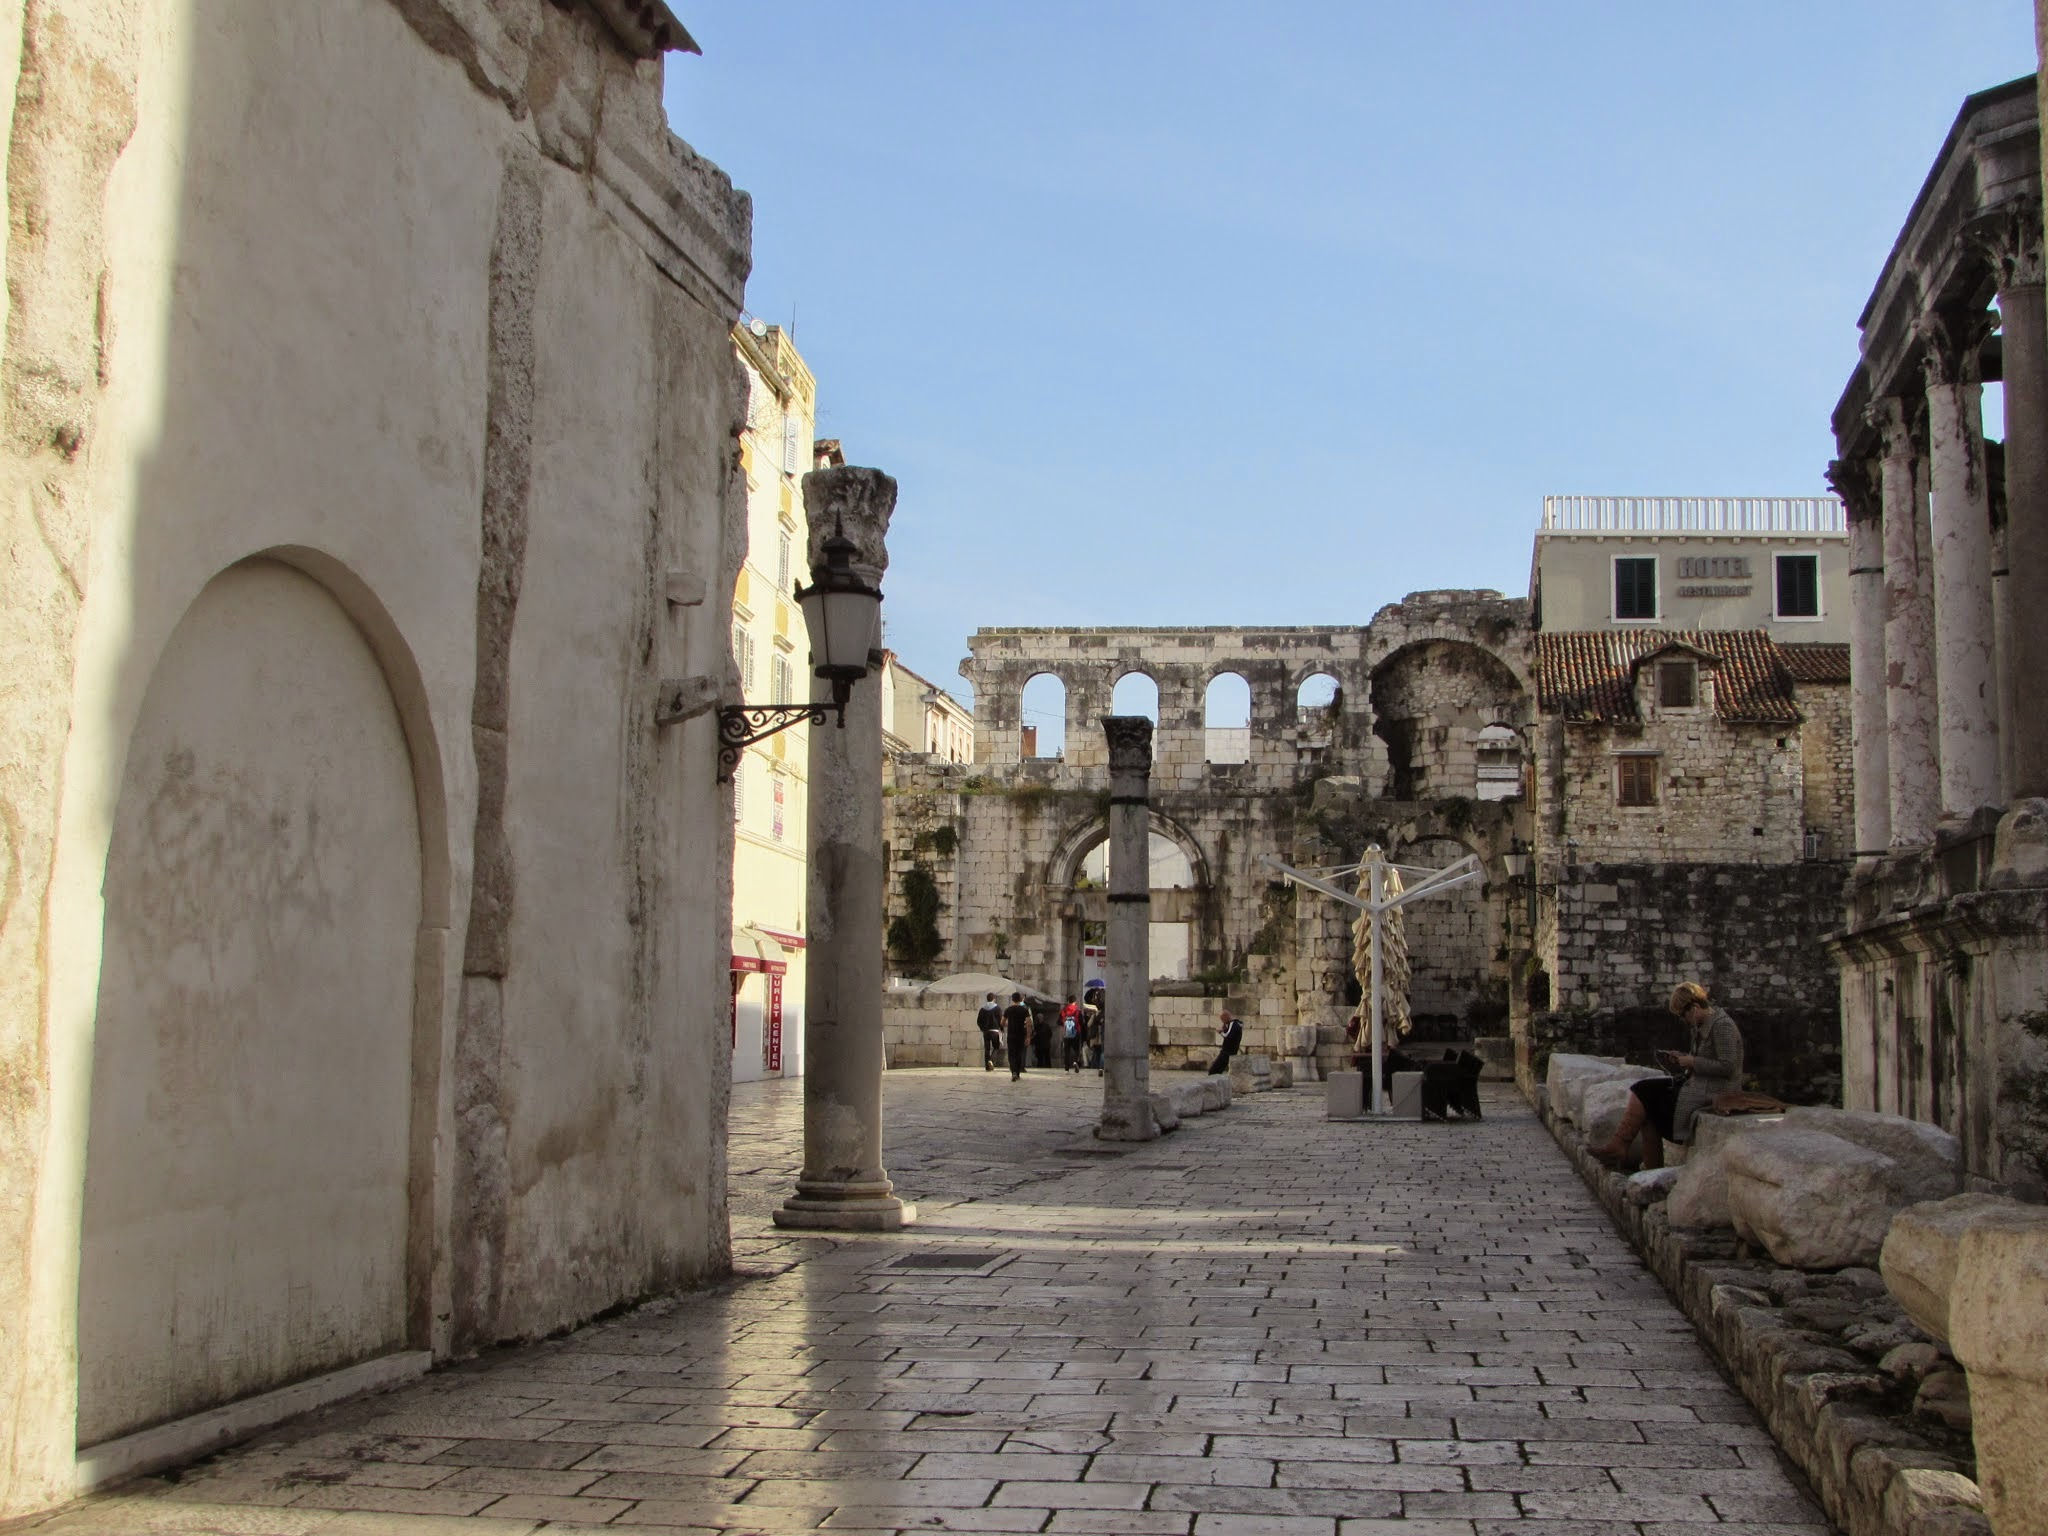 Like Dubrovnik, everything there was beautiful and ancient.